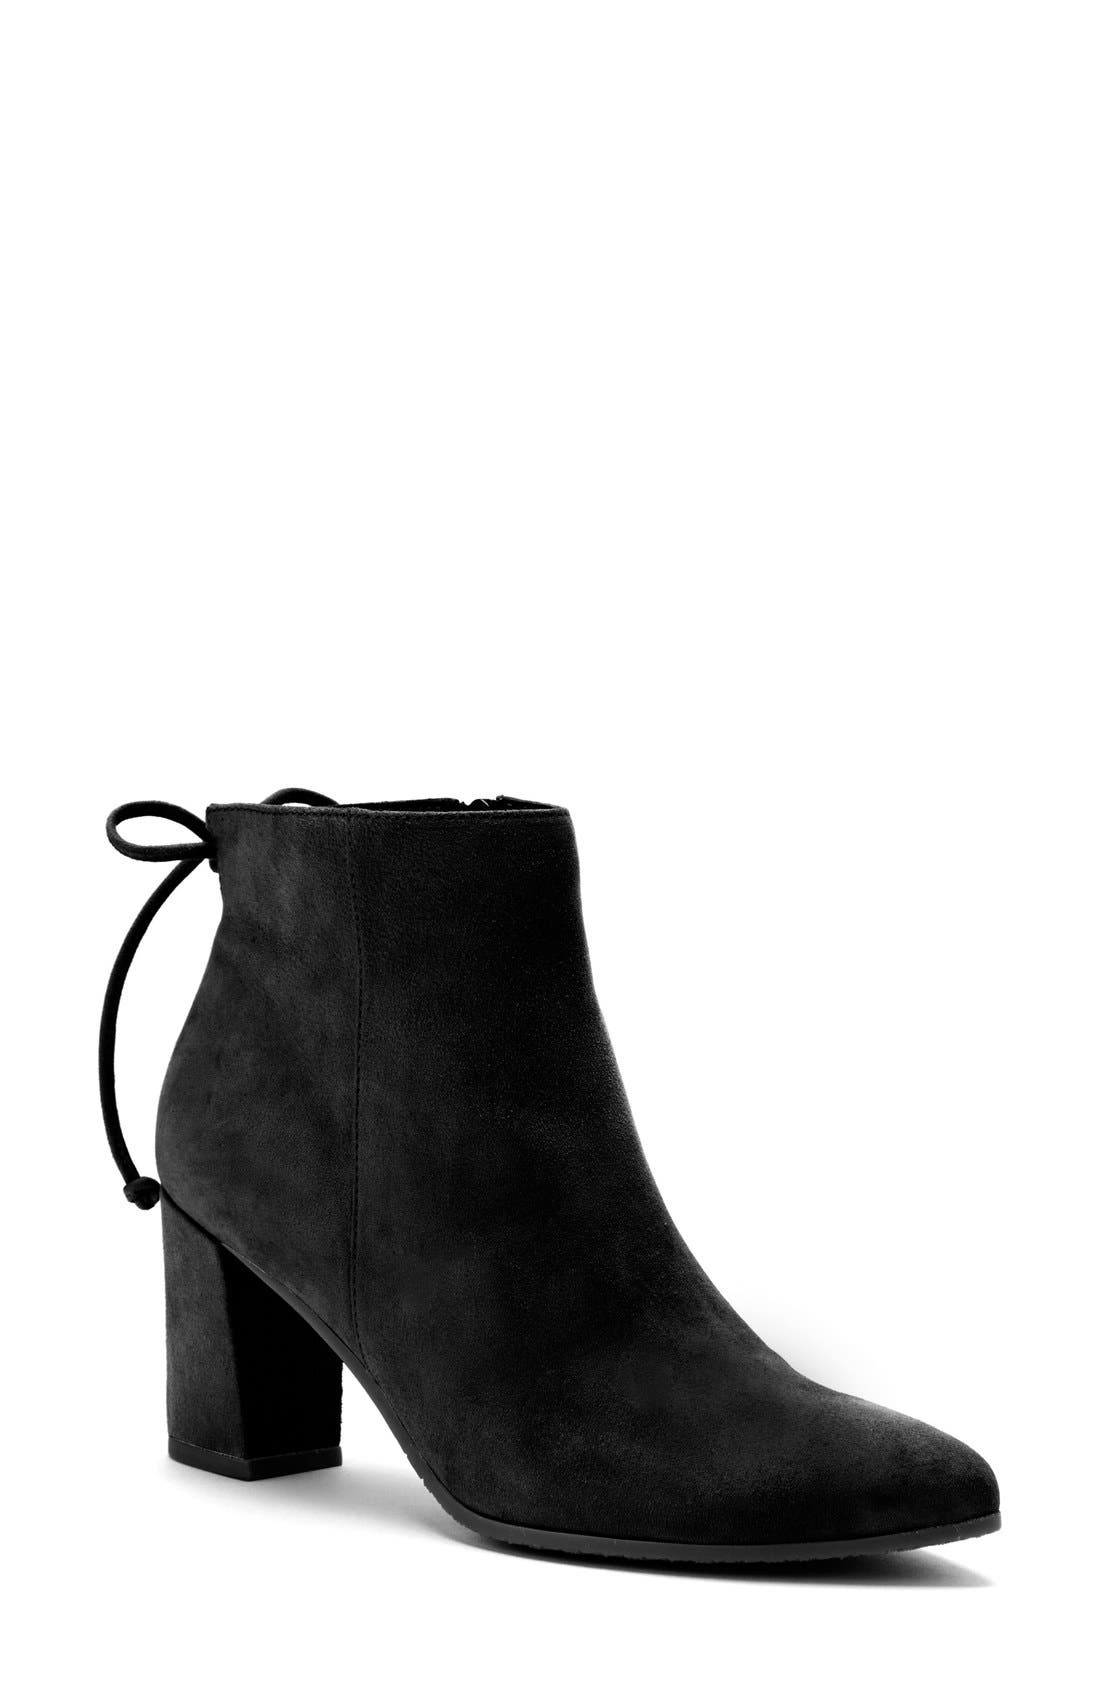 Tiana Waterproof Pointy Toe Bootie,                             Main thumbnail 1, color,                             006